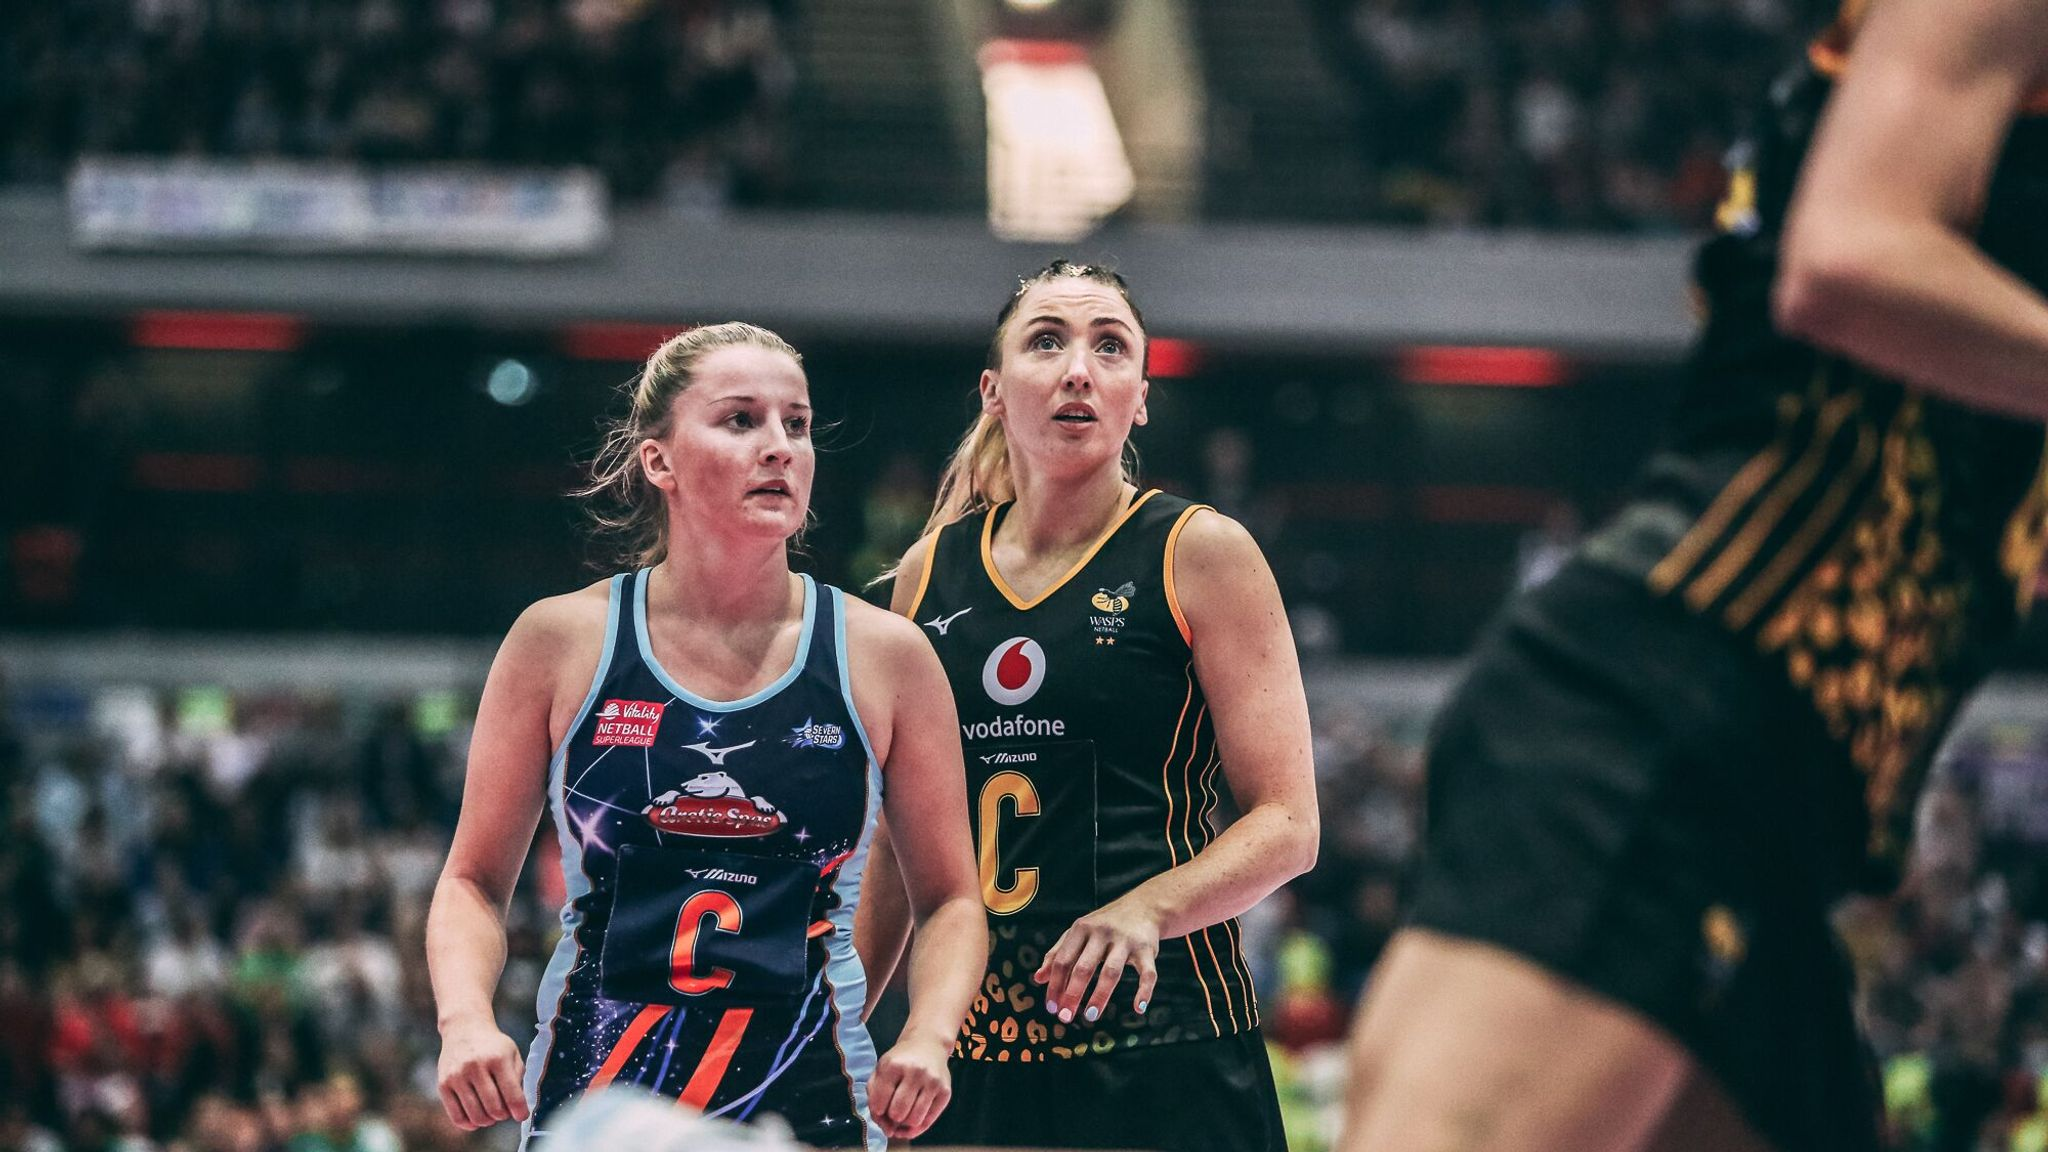 Tamsin Greenway ponders the merit in implementing any of the Fast5 rules into netball